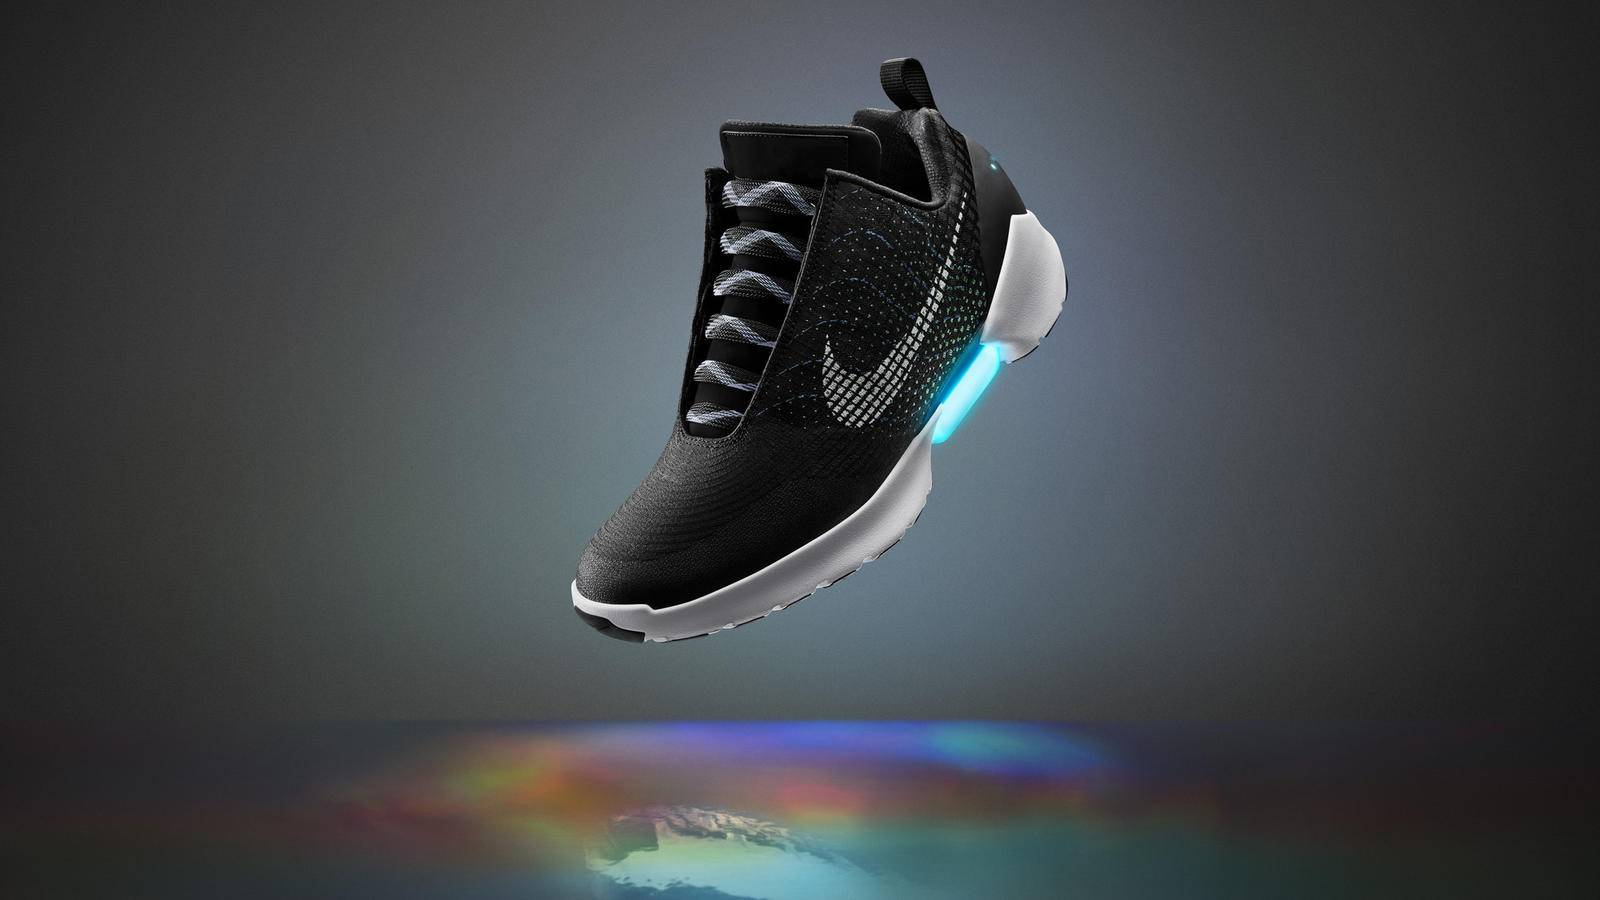 Nike HyperAdapt 1.0 sneakers with self-tightening laces.